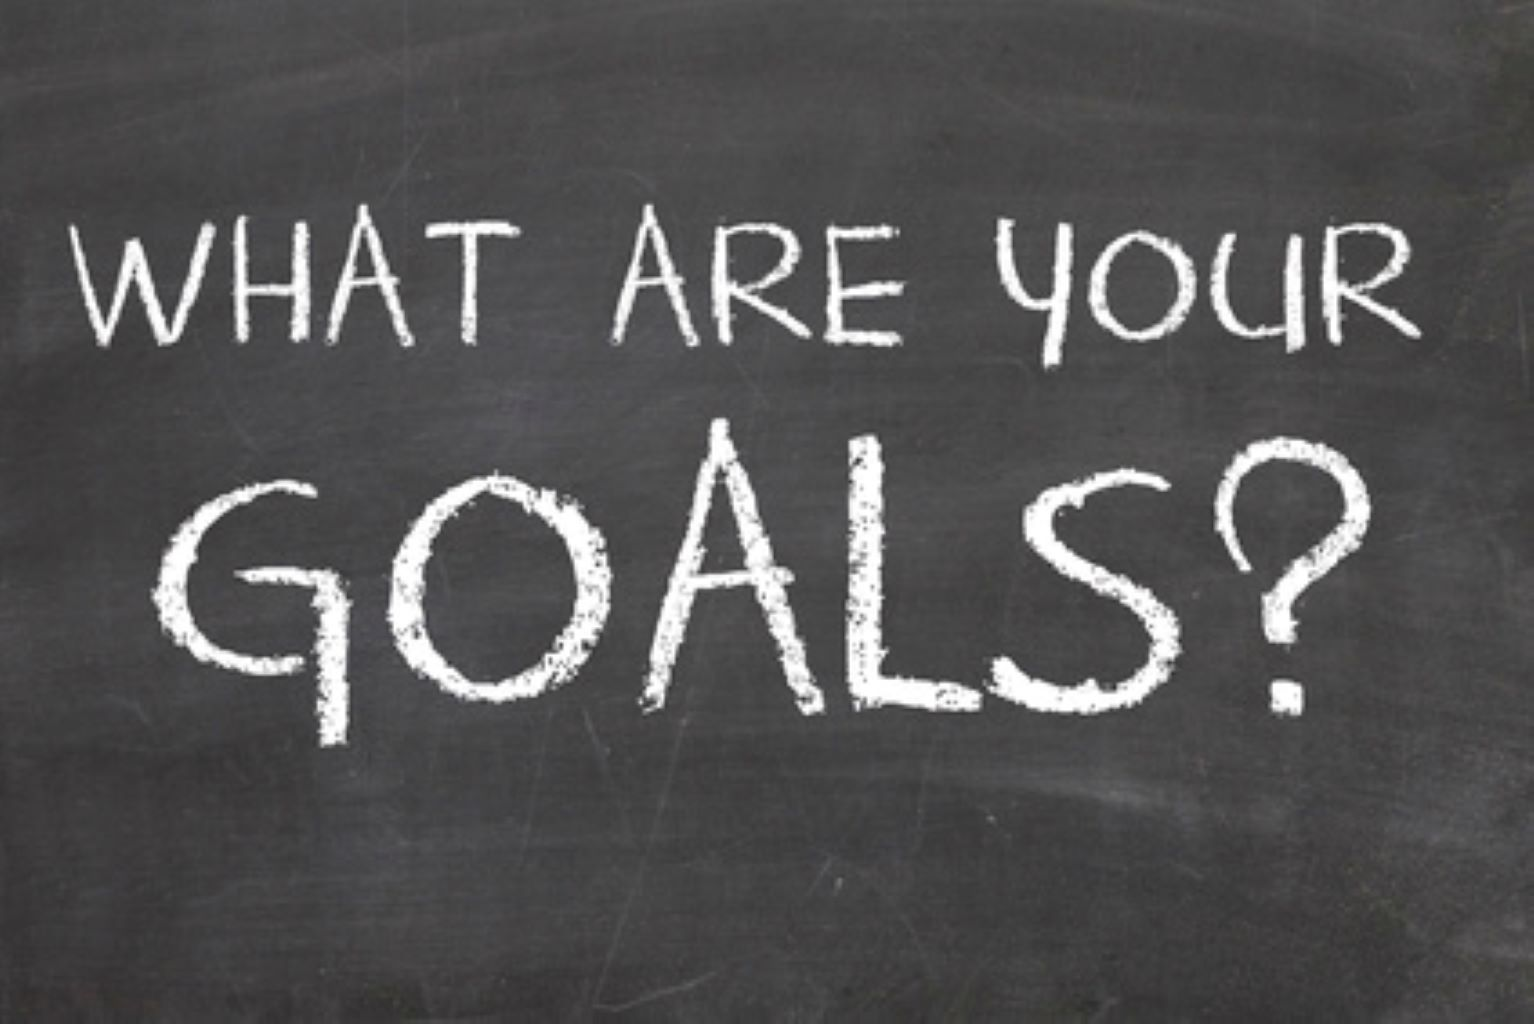 What Are Your Goals for Vehicle Tracking?